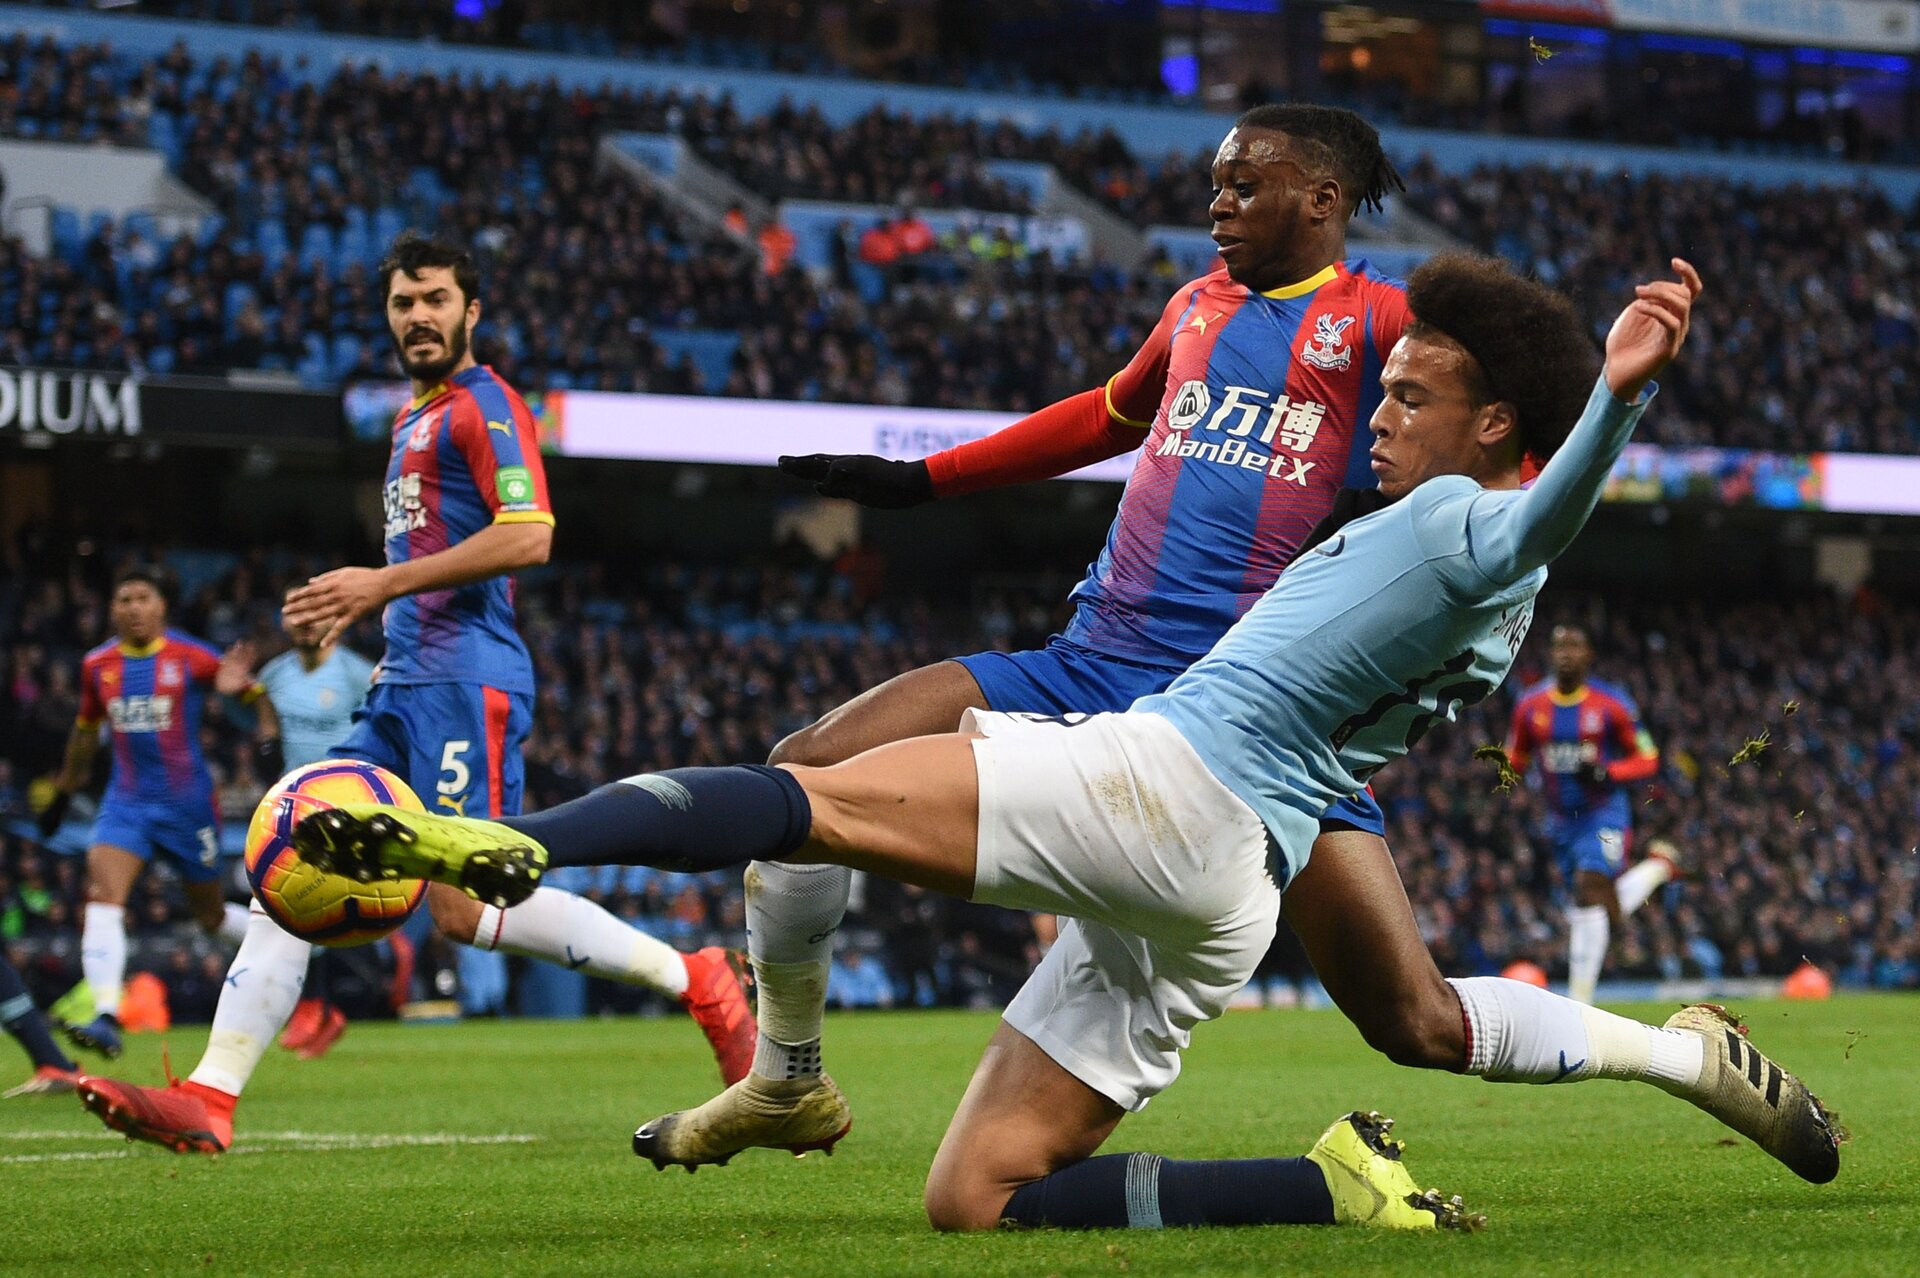 Manchester City's German midfielder Leroy Sane (R) vies with Crystal Palace's English midfielder Aaron Wan-Bissaka (L) during the English Premier League football match between Manchester City and Crystal Palace at the Etihad Stadium in Manchester, north west England, on December 22, 2018. (Photo by Oli SCARFF / AFP) / RESTRICTED TO EDITORIAL USE. No use with unauthorized audio, video, data, fixture lists, club/league logos or 'live' services. Online in-match use limited to 120 images. An additional 40 images may be used in extra time. No video emulation. Social media in-match use limited to 120 images. An additional 40 images may be used in extra time. No use in betting publications, games or single club/league/player publications. /         (Photo credit should read OLI SCARFF/AFP/Getty Images)